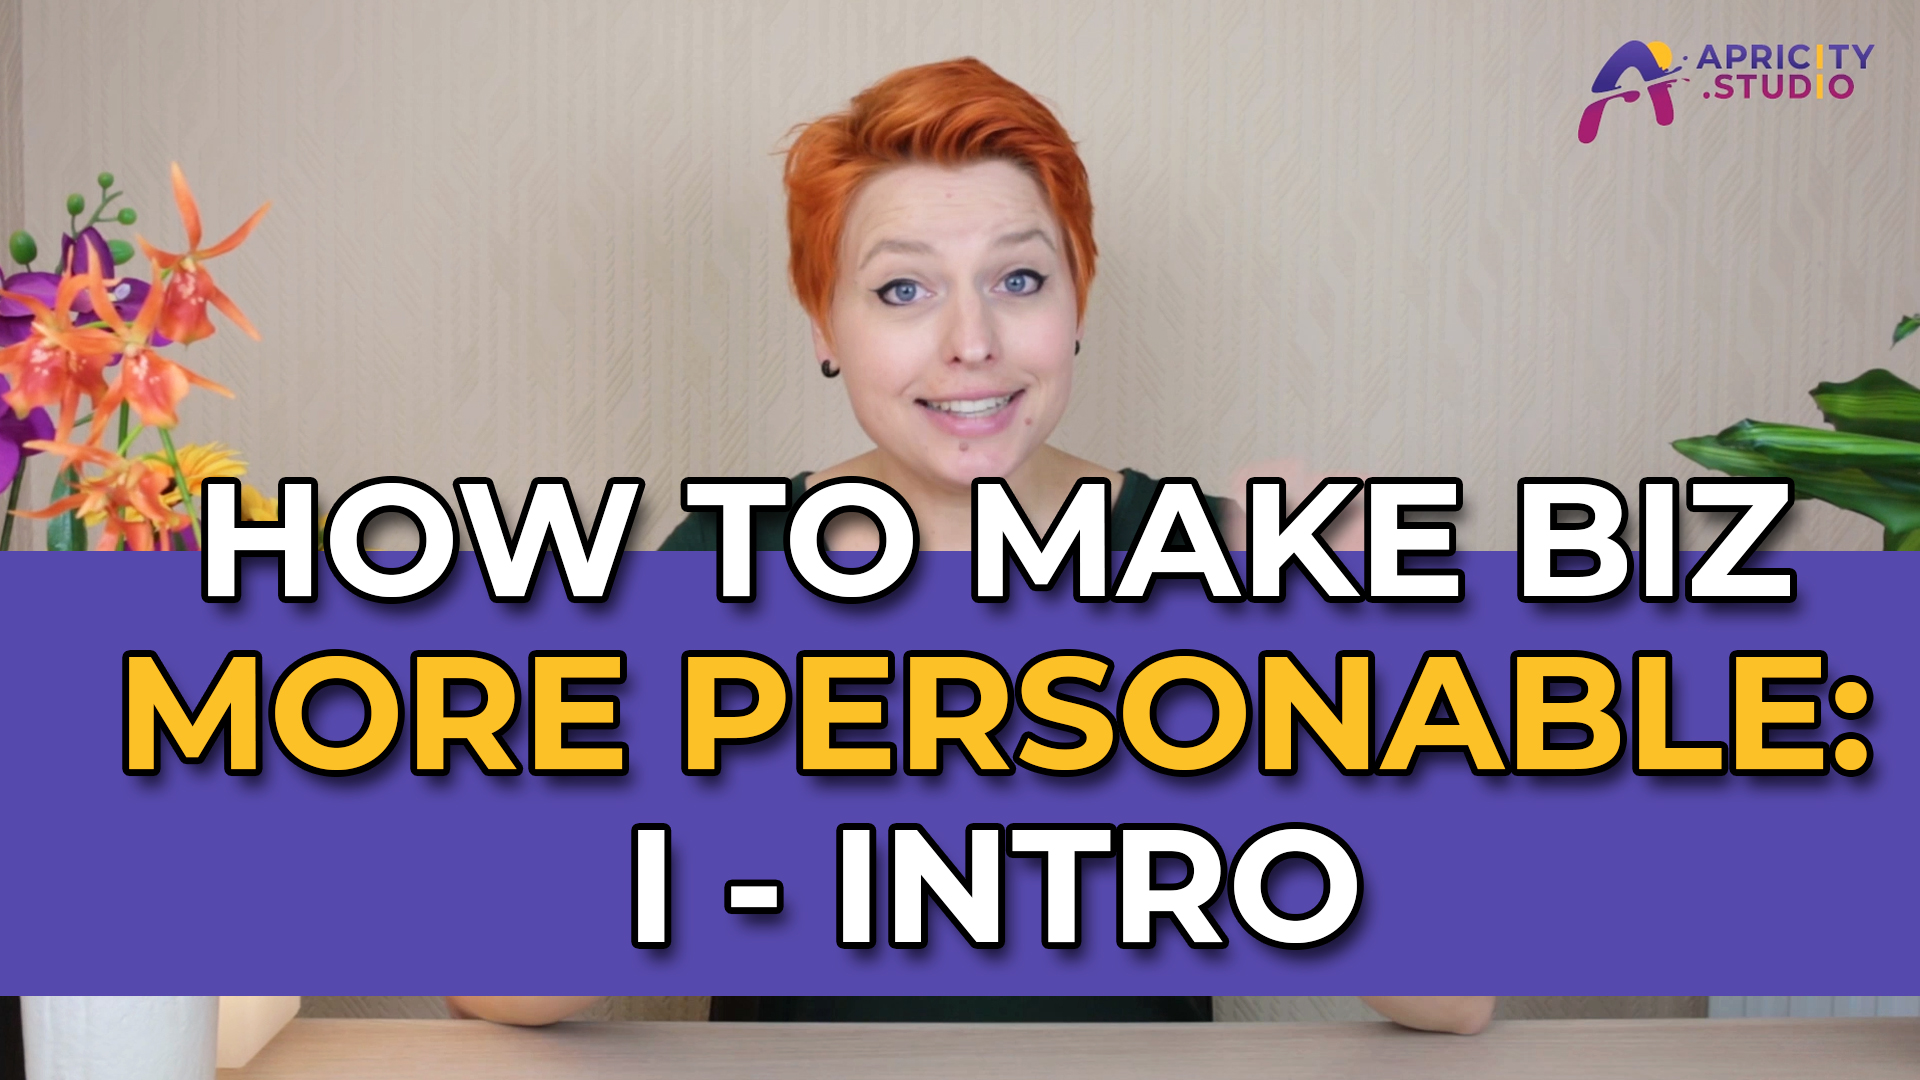 VLOG – How to Make Business More Personable